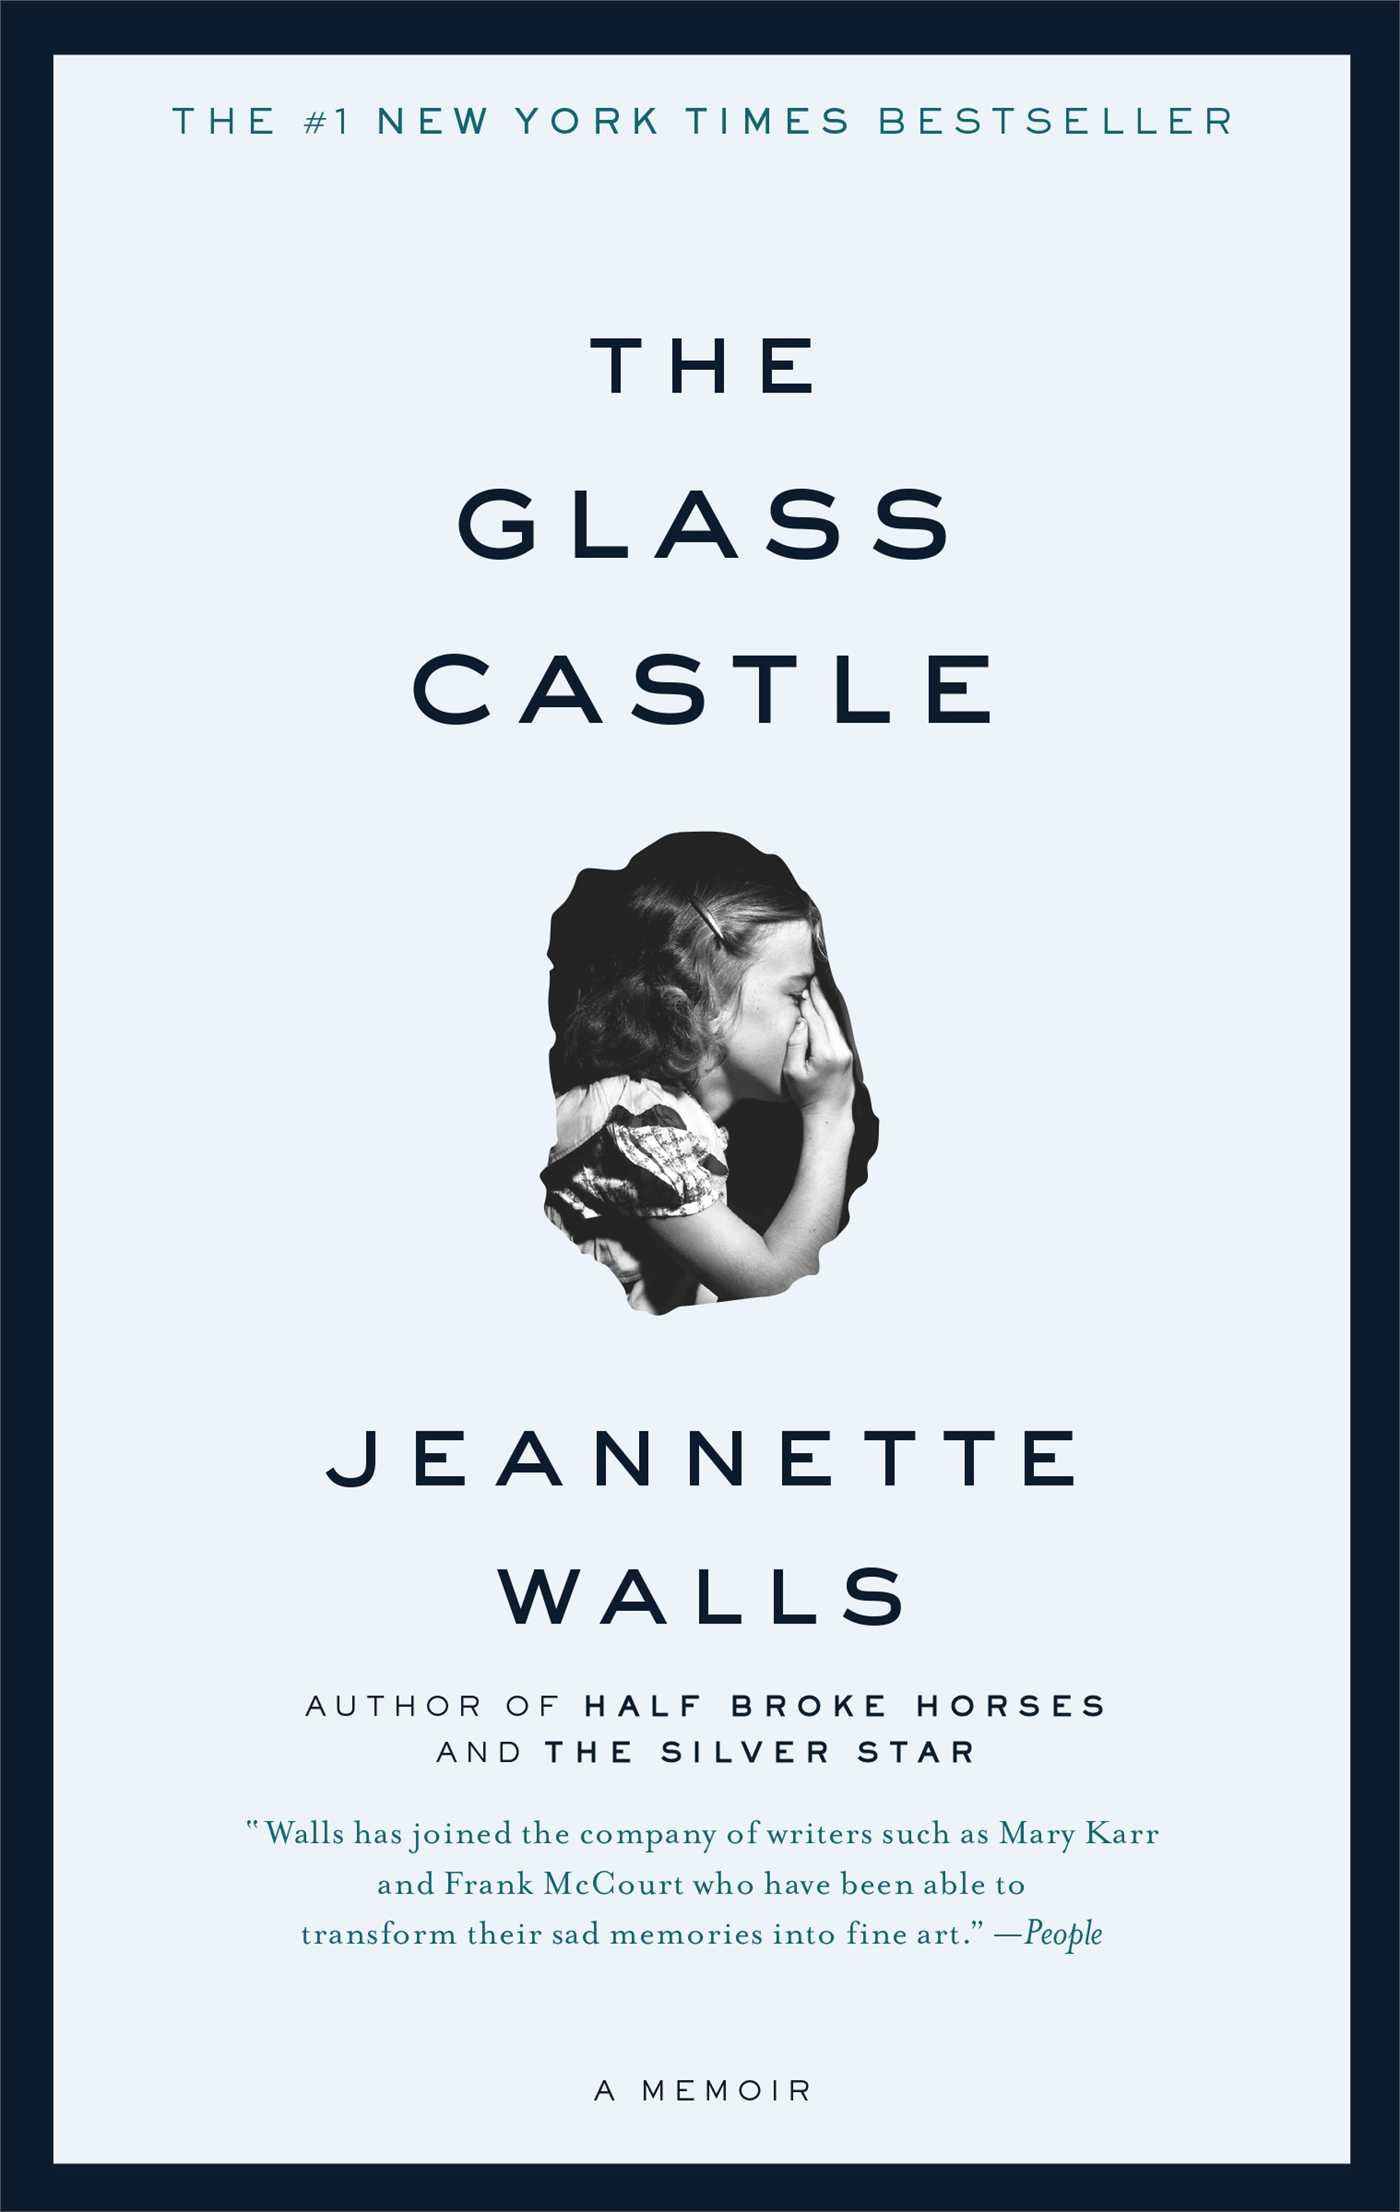 The Glass Castle -Jeannette Walls - This is a great autobiography that is authentic and honest. It shares the author's journey of resiliency and success.It is both heartbreaking and inspiring.